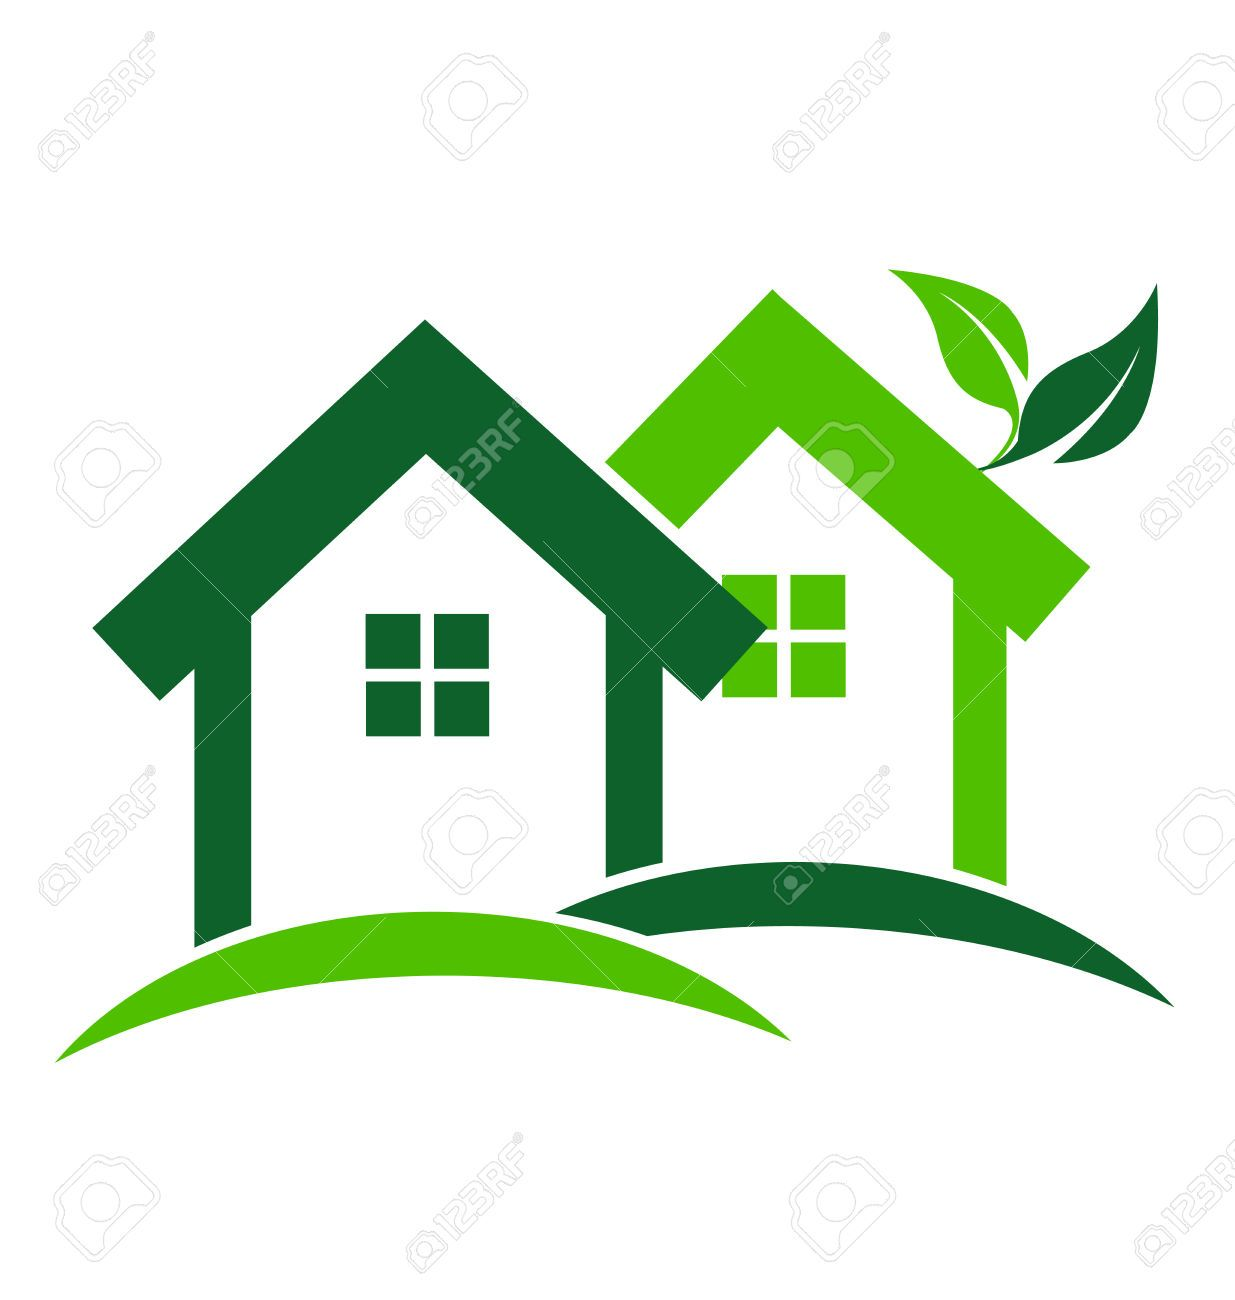 small resolution of green houses real estate business card design vector icon royalty free cliparts vectors and stock illustration image 35628987